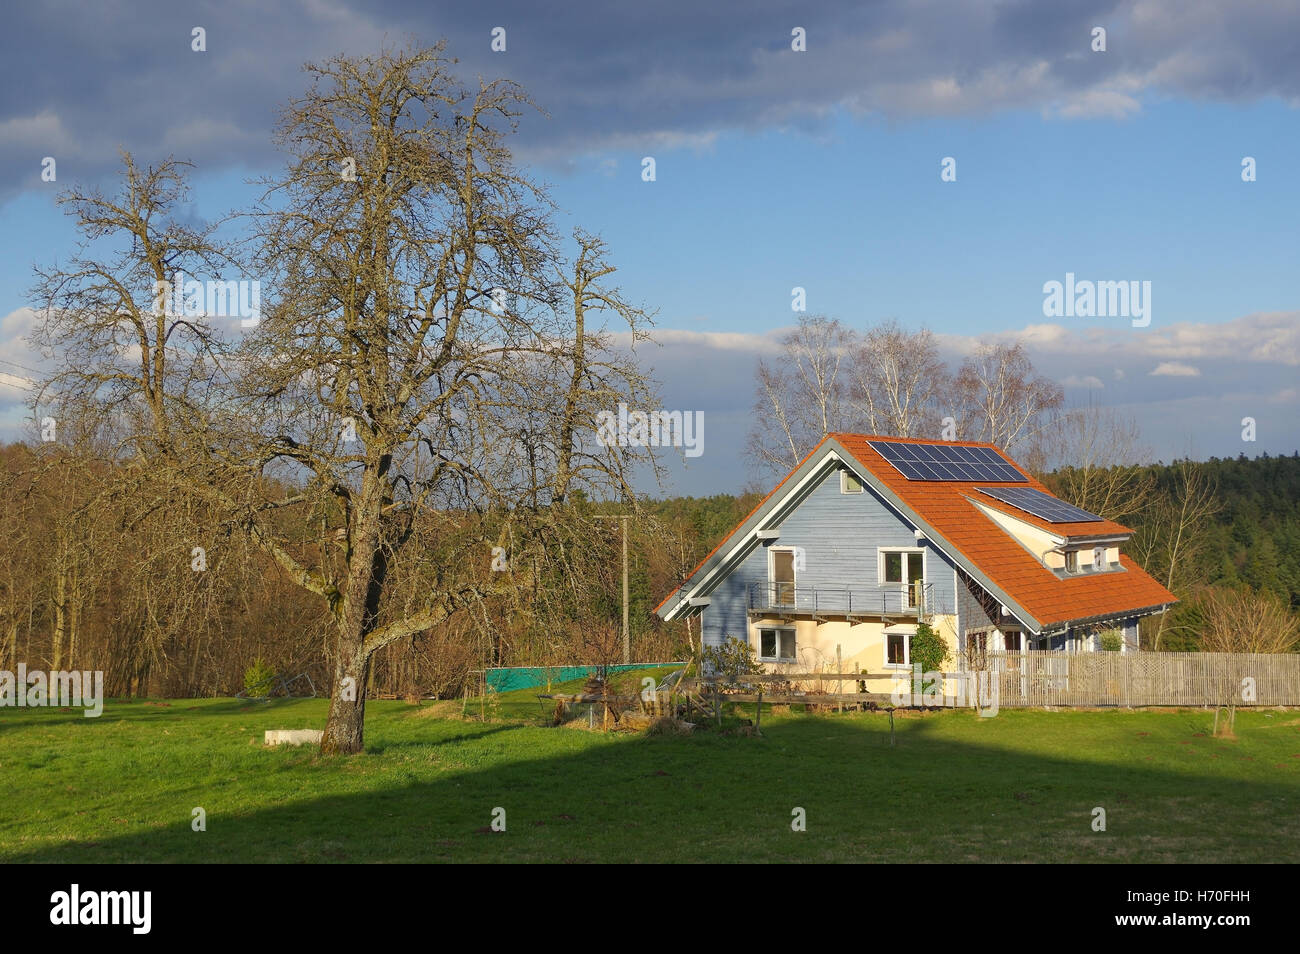 German rural landscape with wooden house near Black Forest Baden Wuertemberg, Schoemberg in Germany Stock Photo